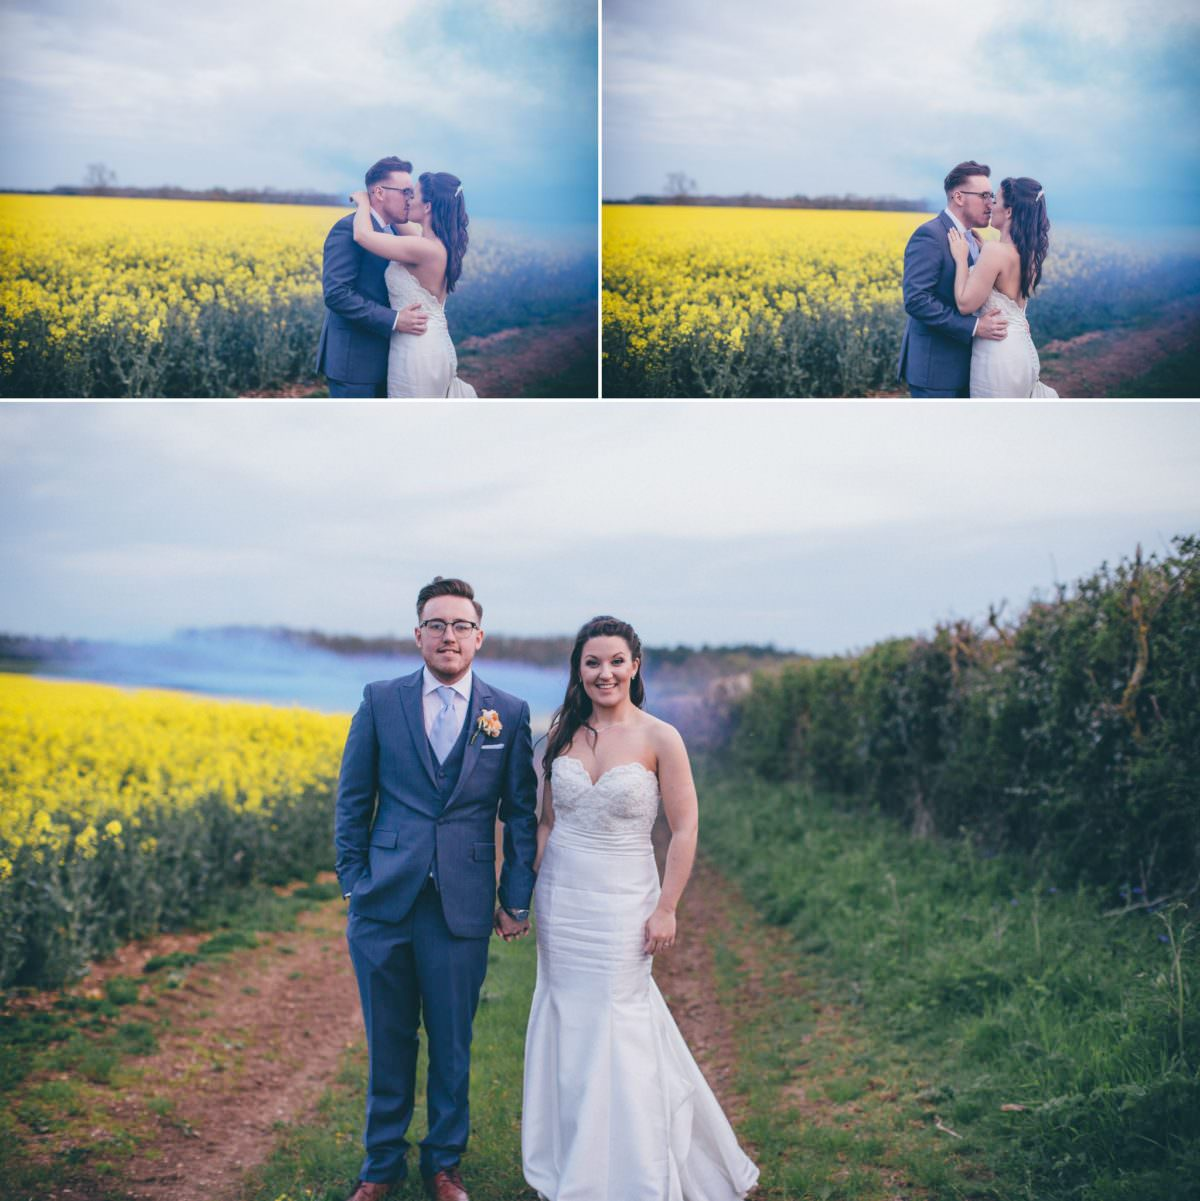 cripps_barn_gloucesterhsire_welsh_wedding_photographer_rachel_lambert_photography_jordan_amy_ 128